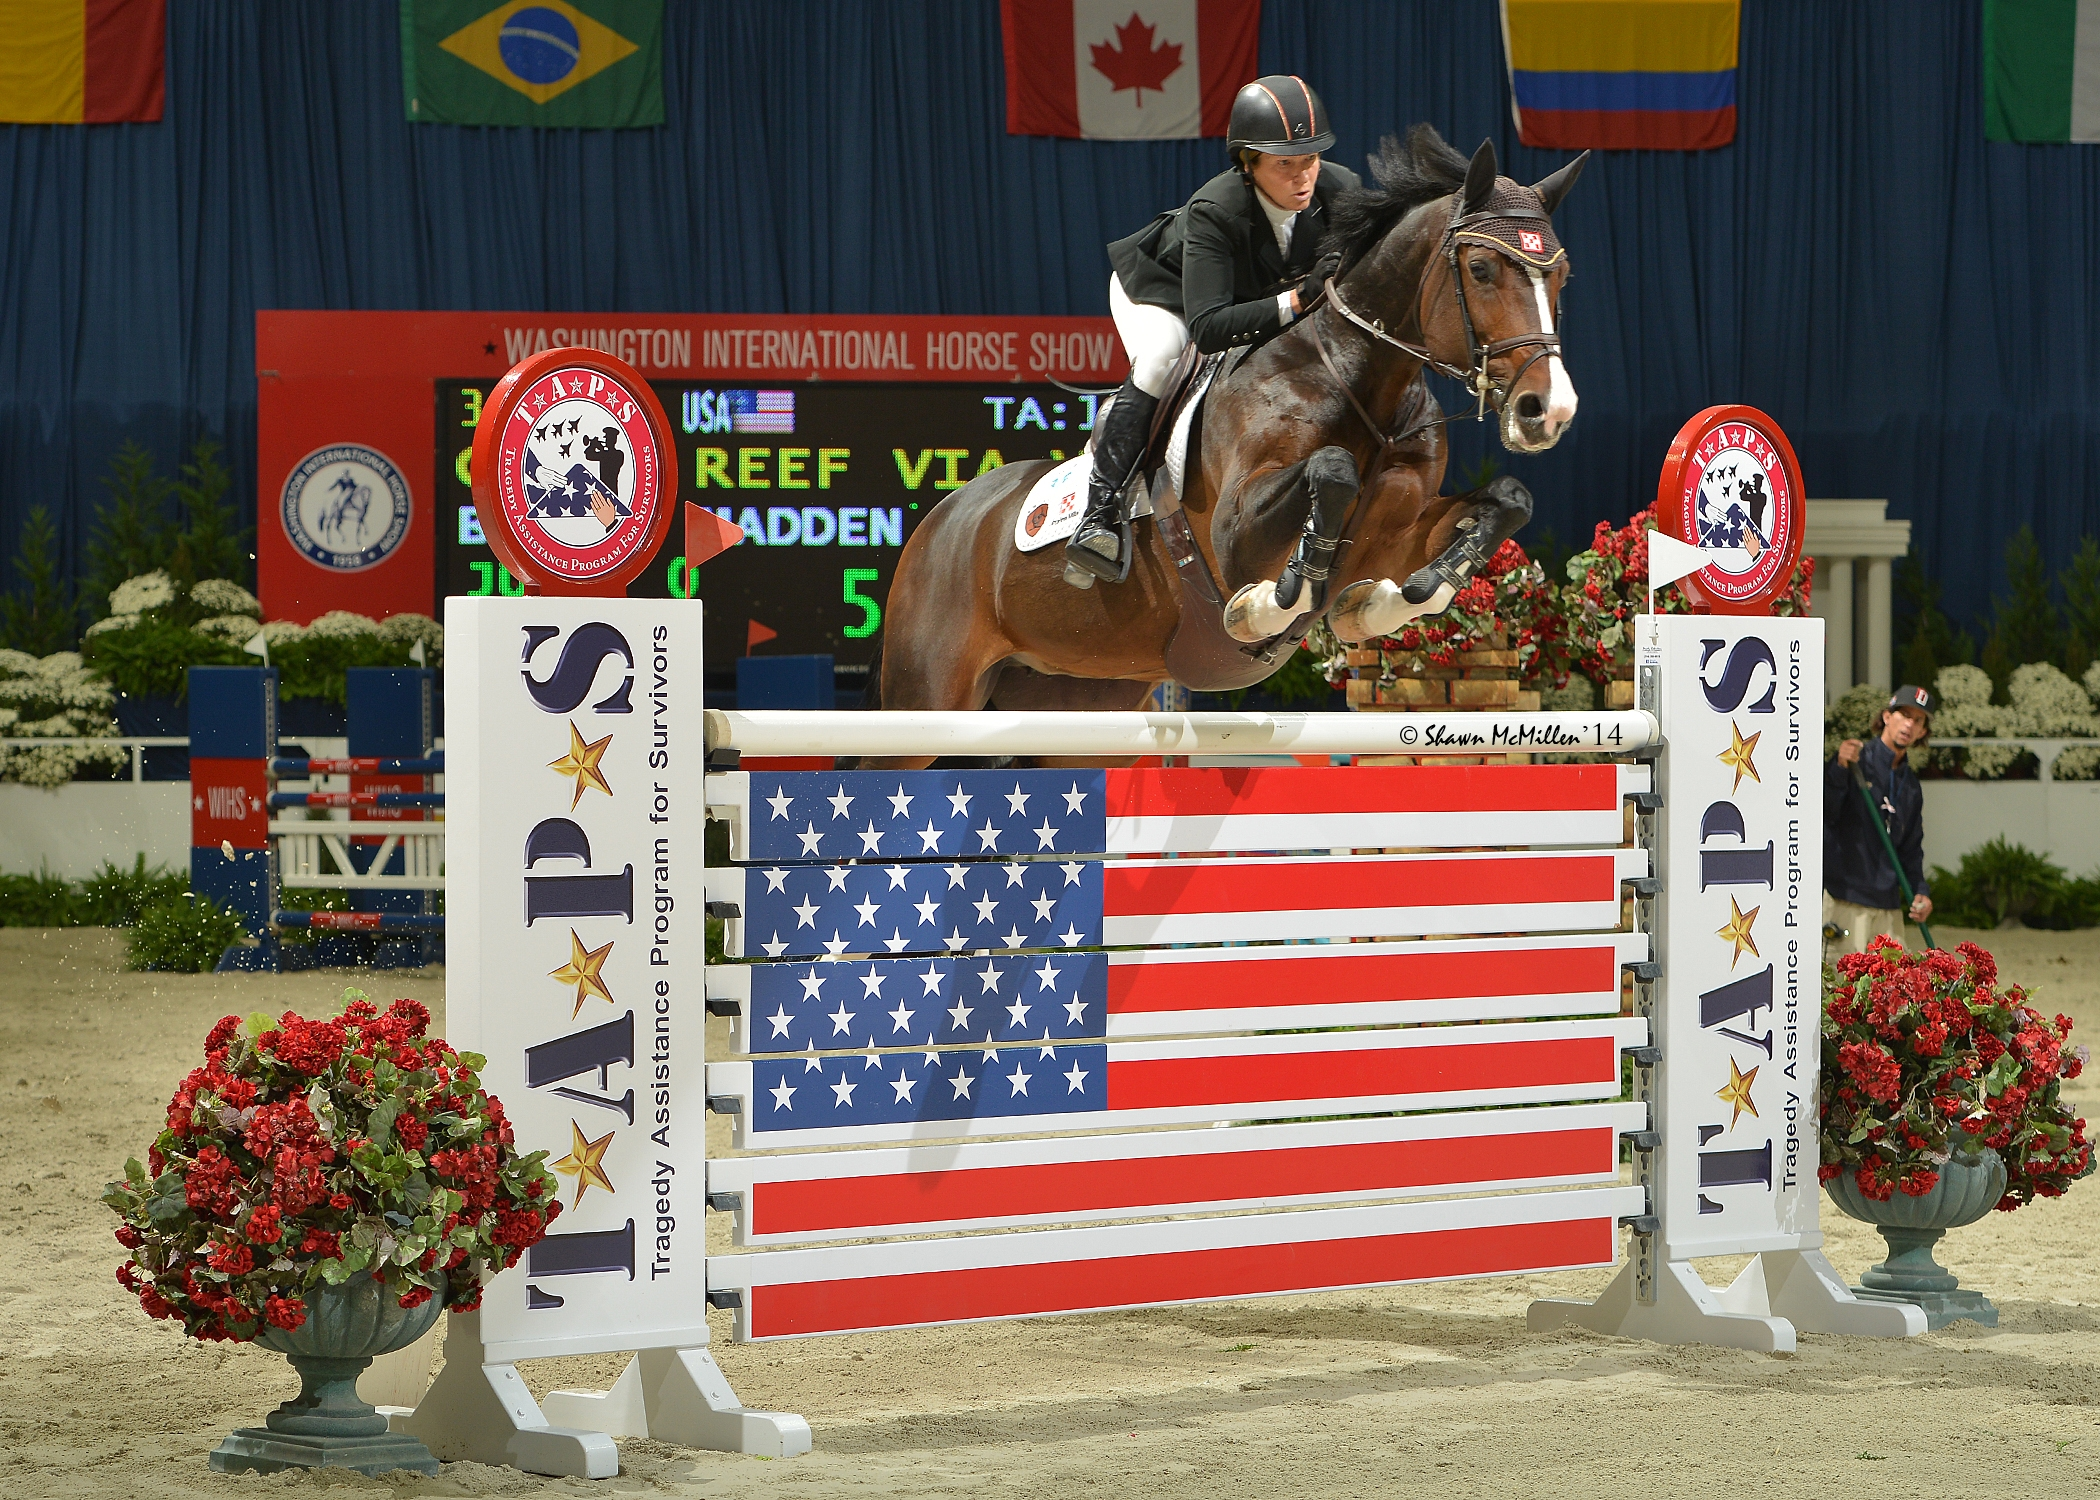 Beezie Madden and Coral Reef Via Volo clearing the Jump for TAPS Challenge fence at the 2014 WIHS. <br><b>Photo by <a href='http://www.shawnmcmillen.com/' target='_blank'>Shawn McMillen Photography</a></b>